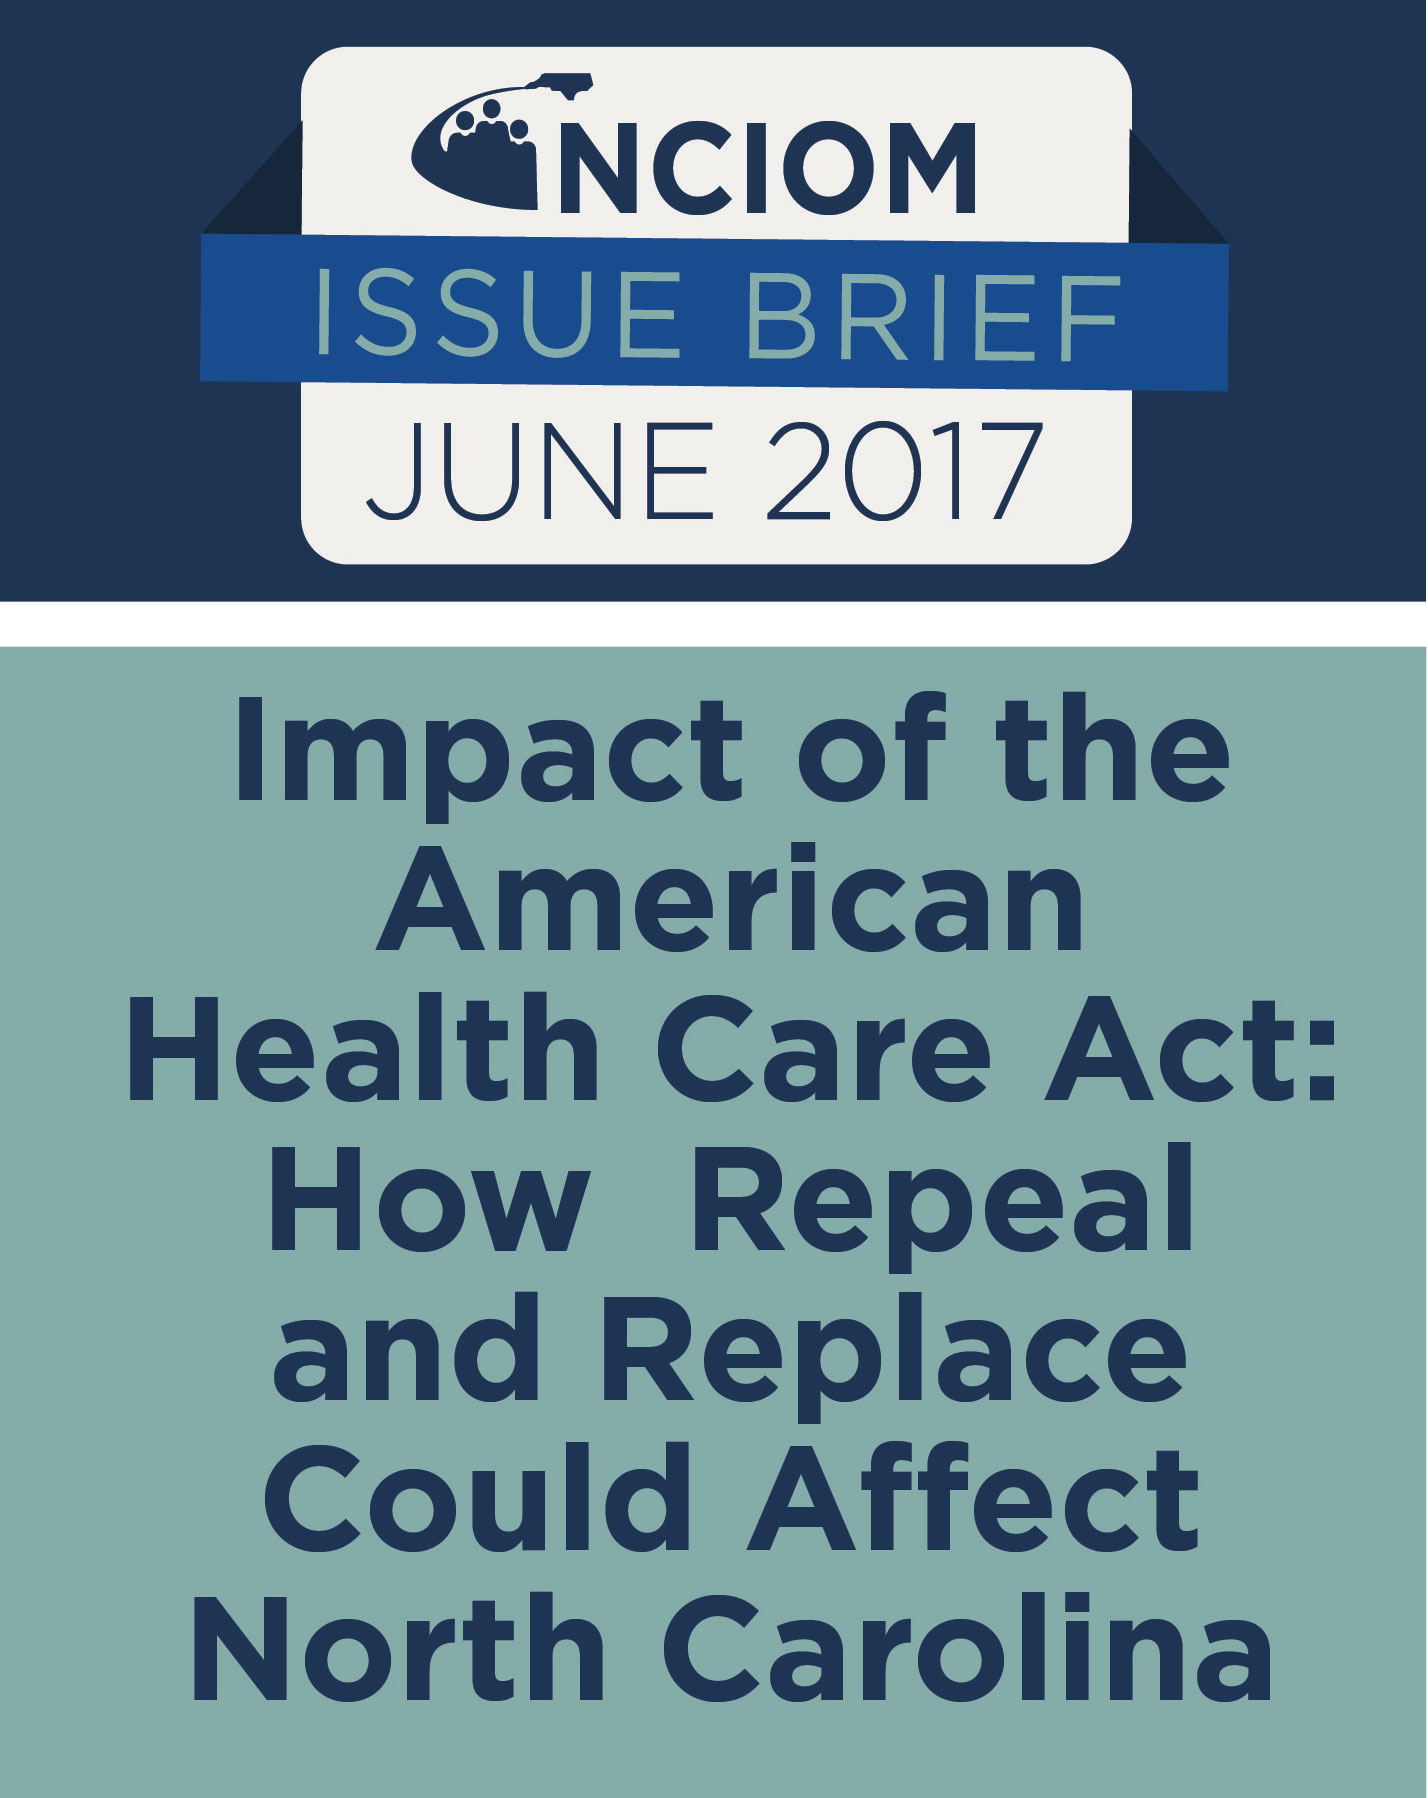 Issue Brief: Impact of the American Health Care Act: How Repeal and Replace Could Affect North Carolina